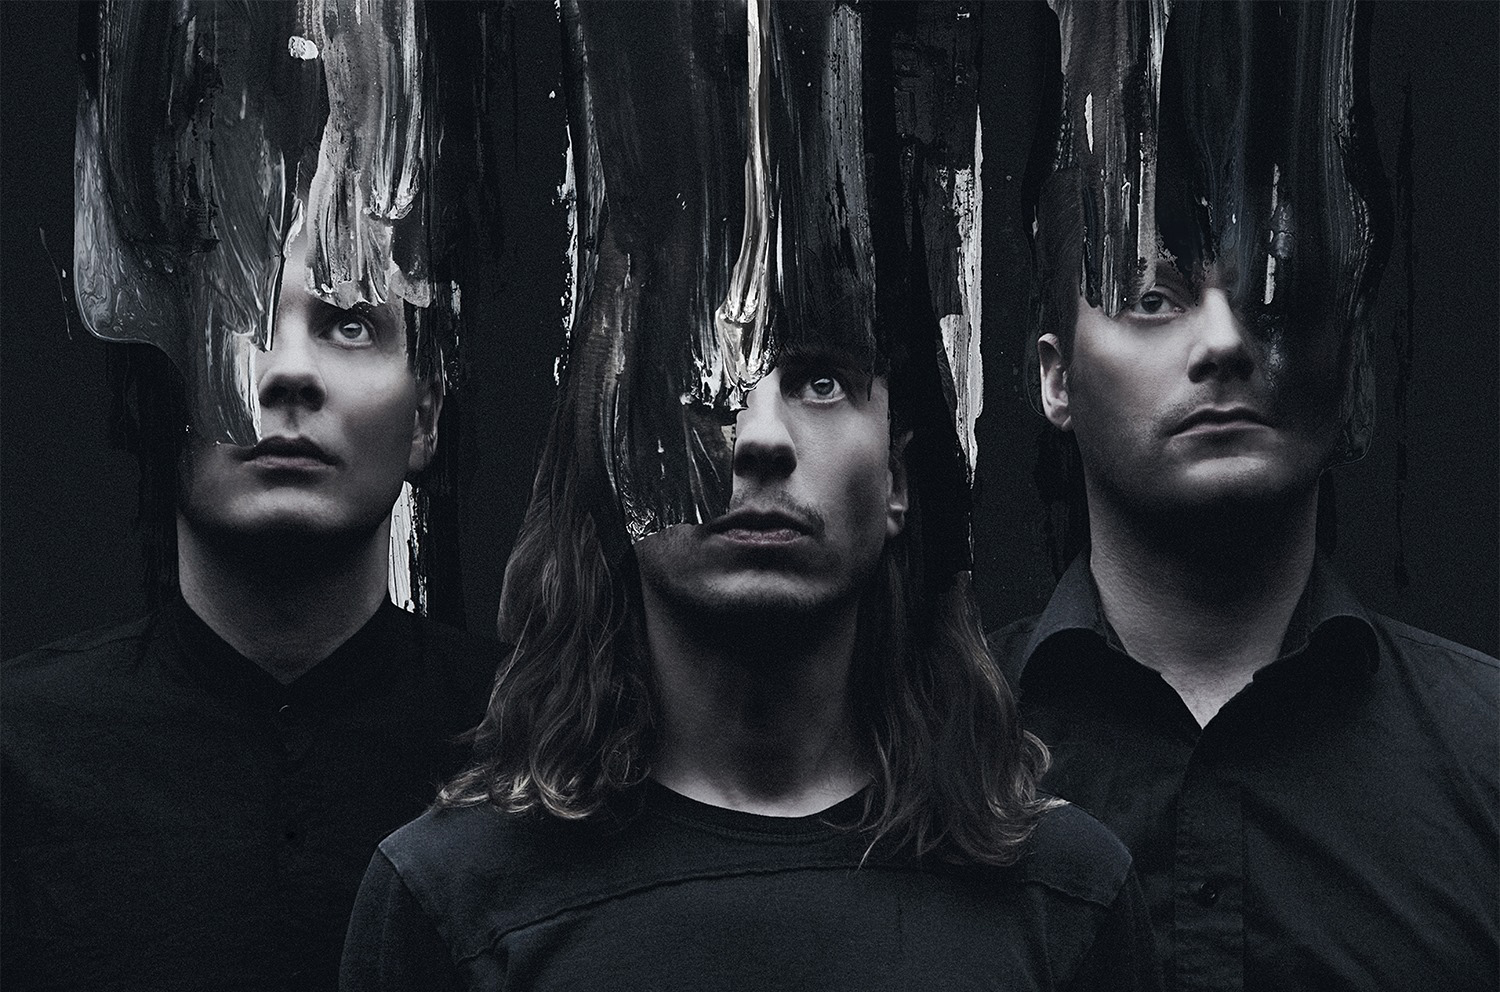 Tune in to a Nordic Playlist from Sigur Rós!